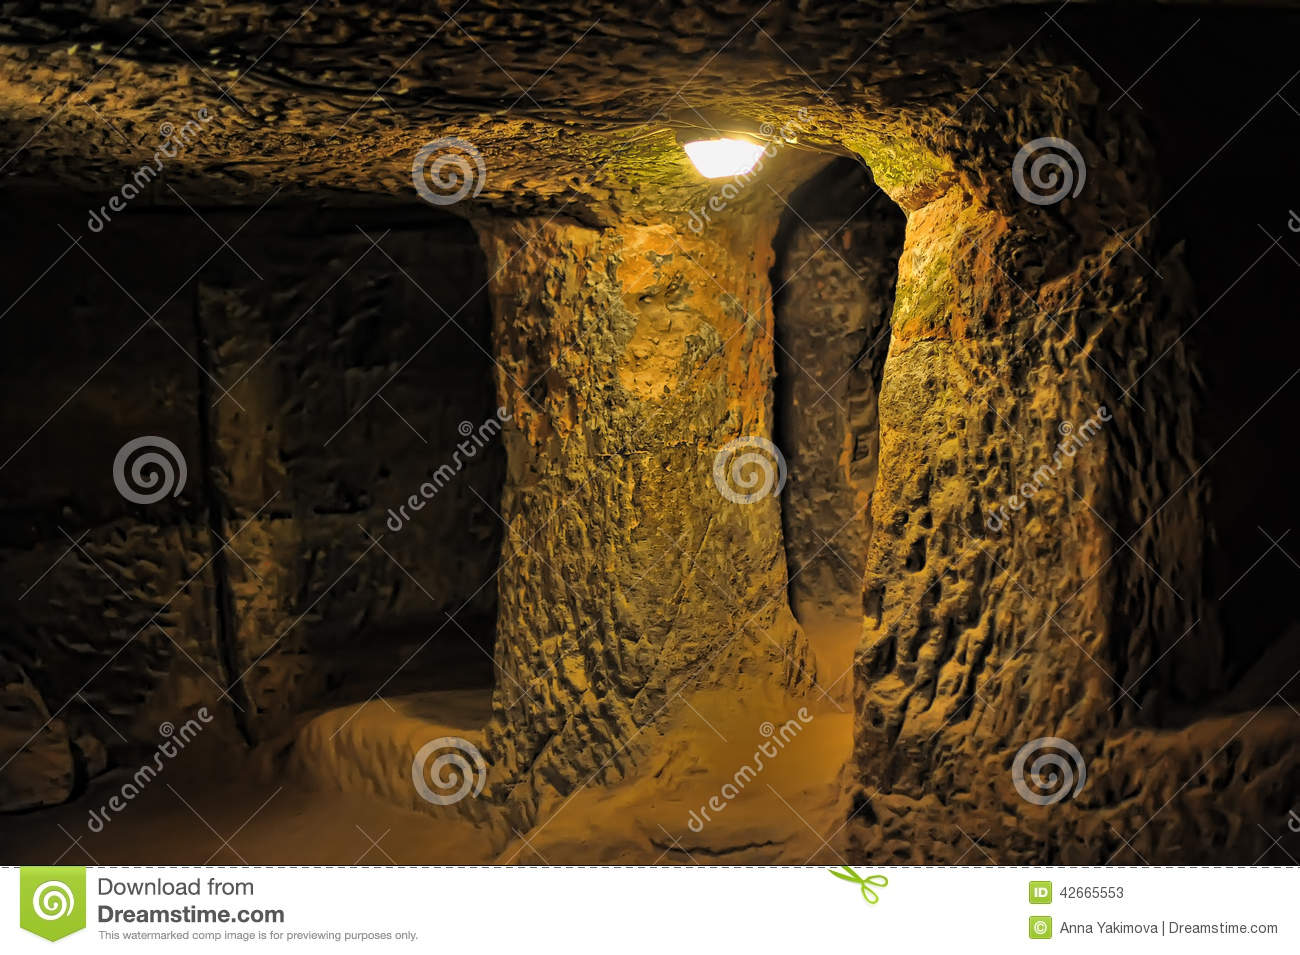 Kaymakli Underground City Stock Photo - Image: 42665553